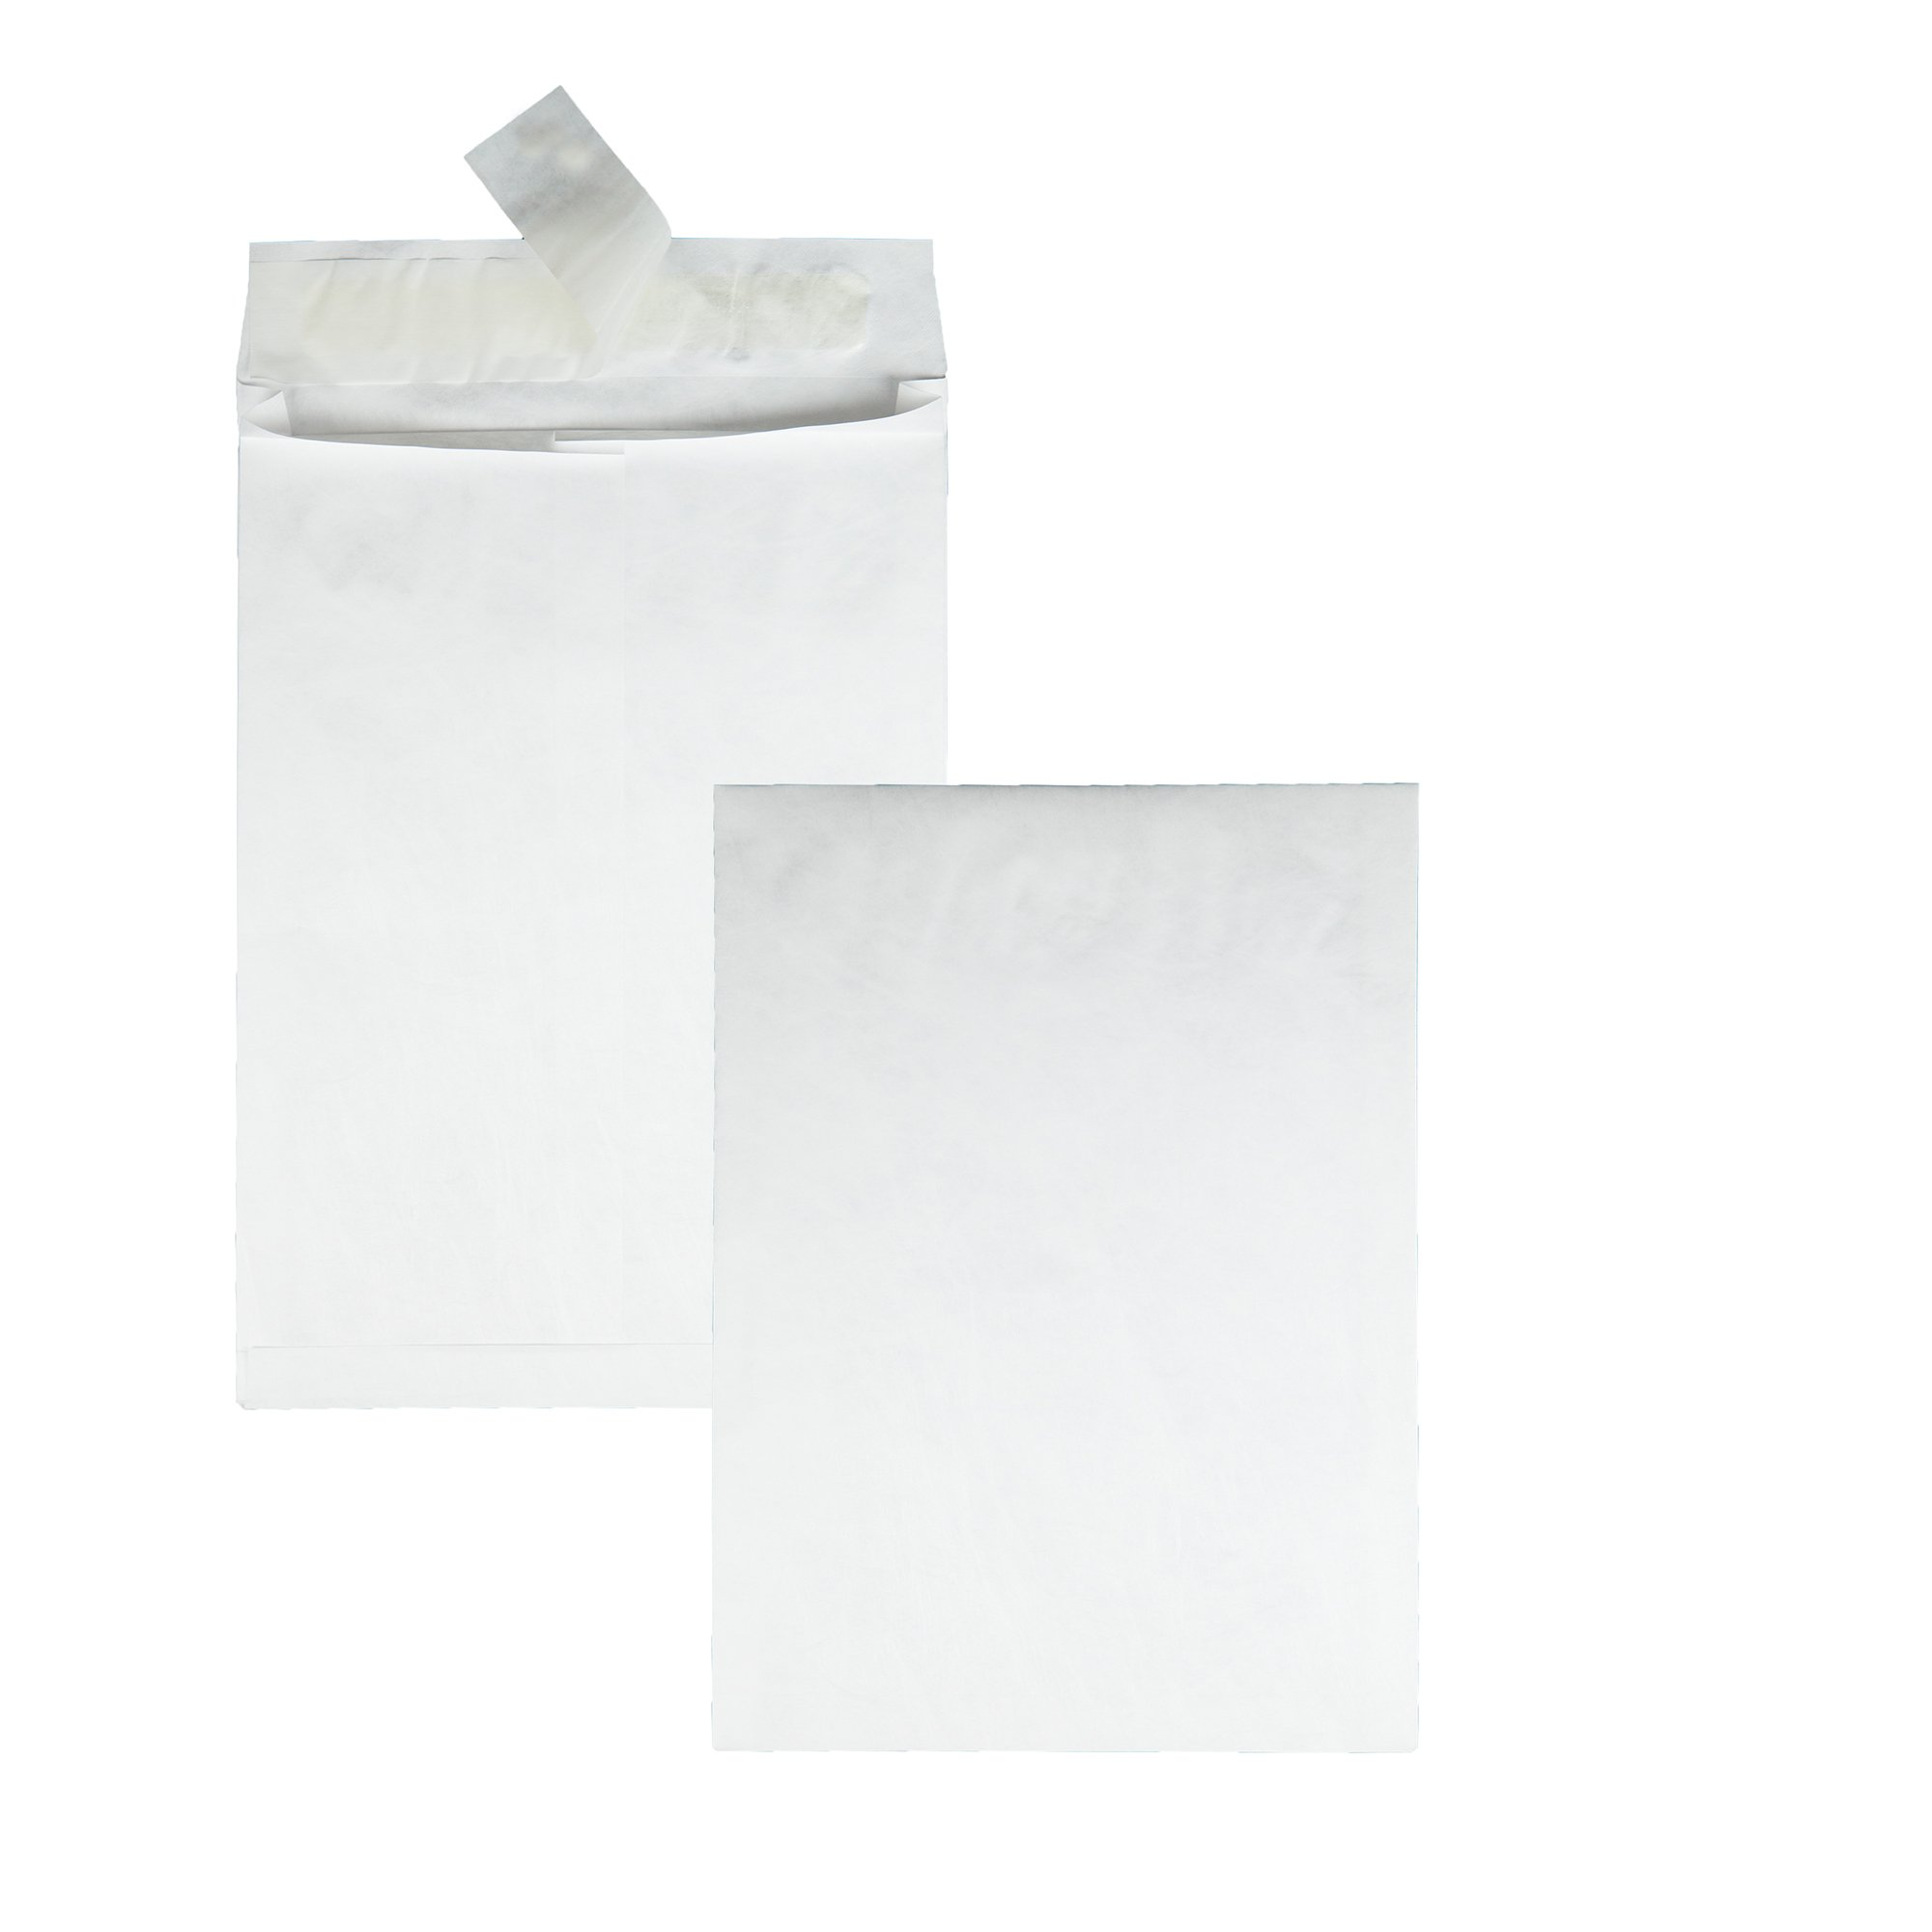 Quality Park Catalog Envelopes, 10 x 13 Inches, Box of 100, White (R4500) by Quality Park